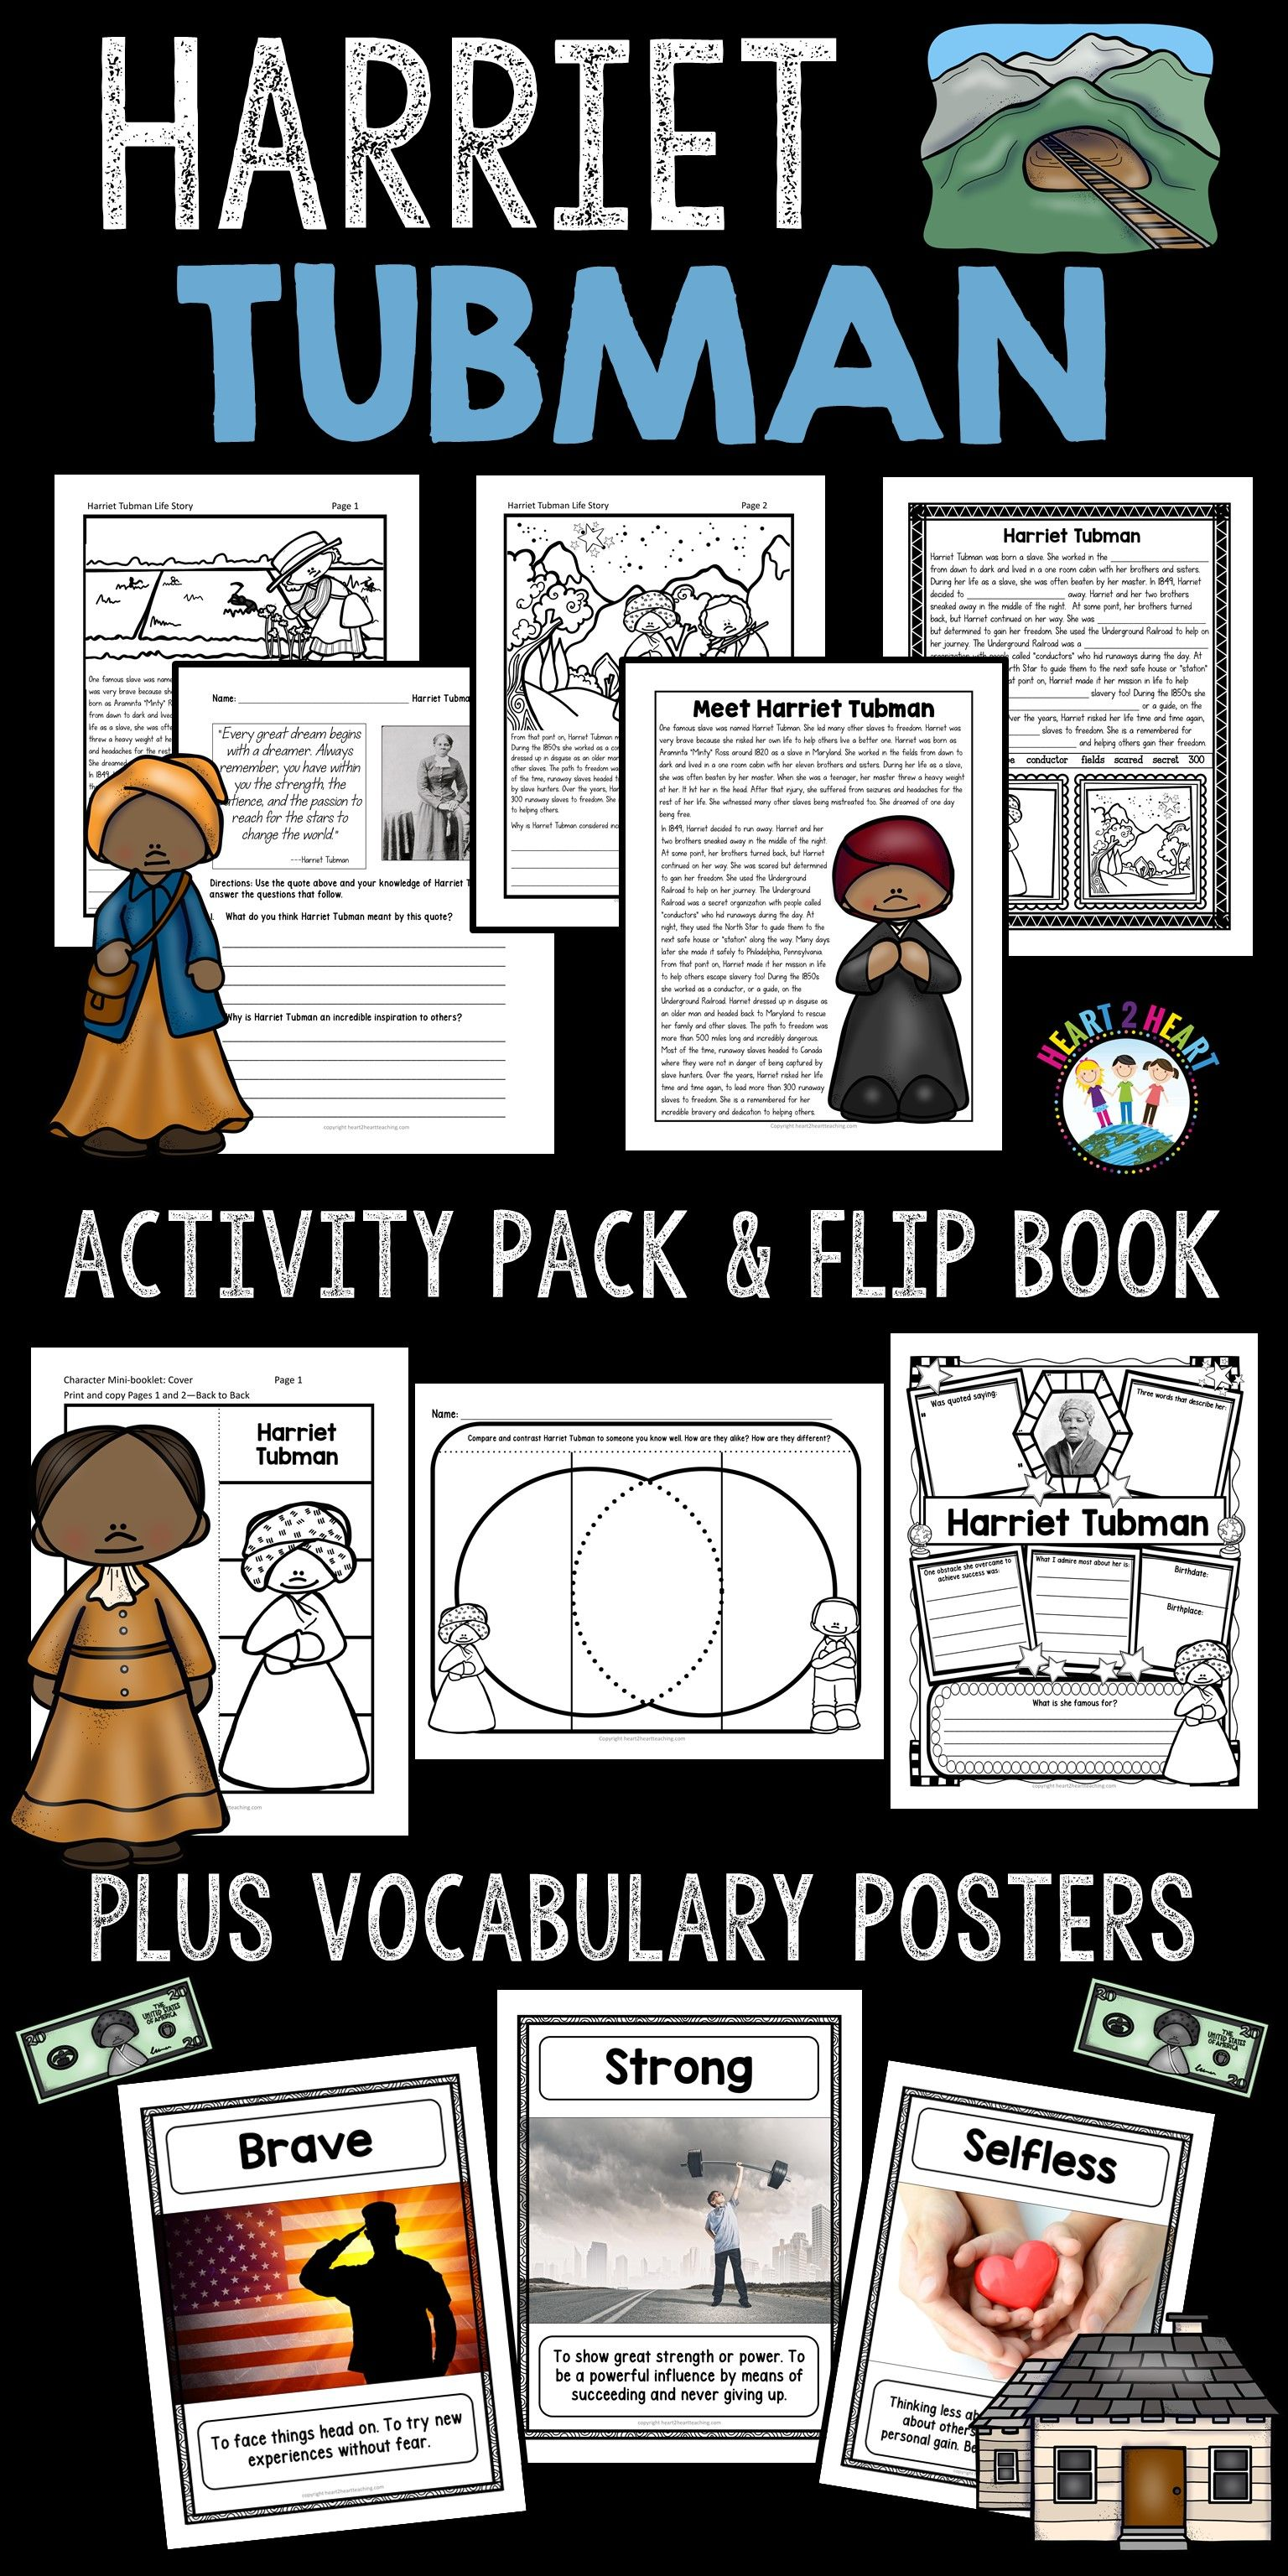 The Life Story Of Harriet Tubman Unit With Articles